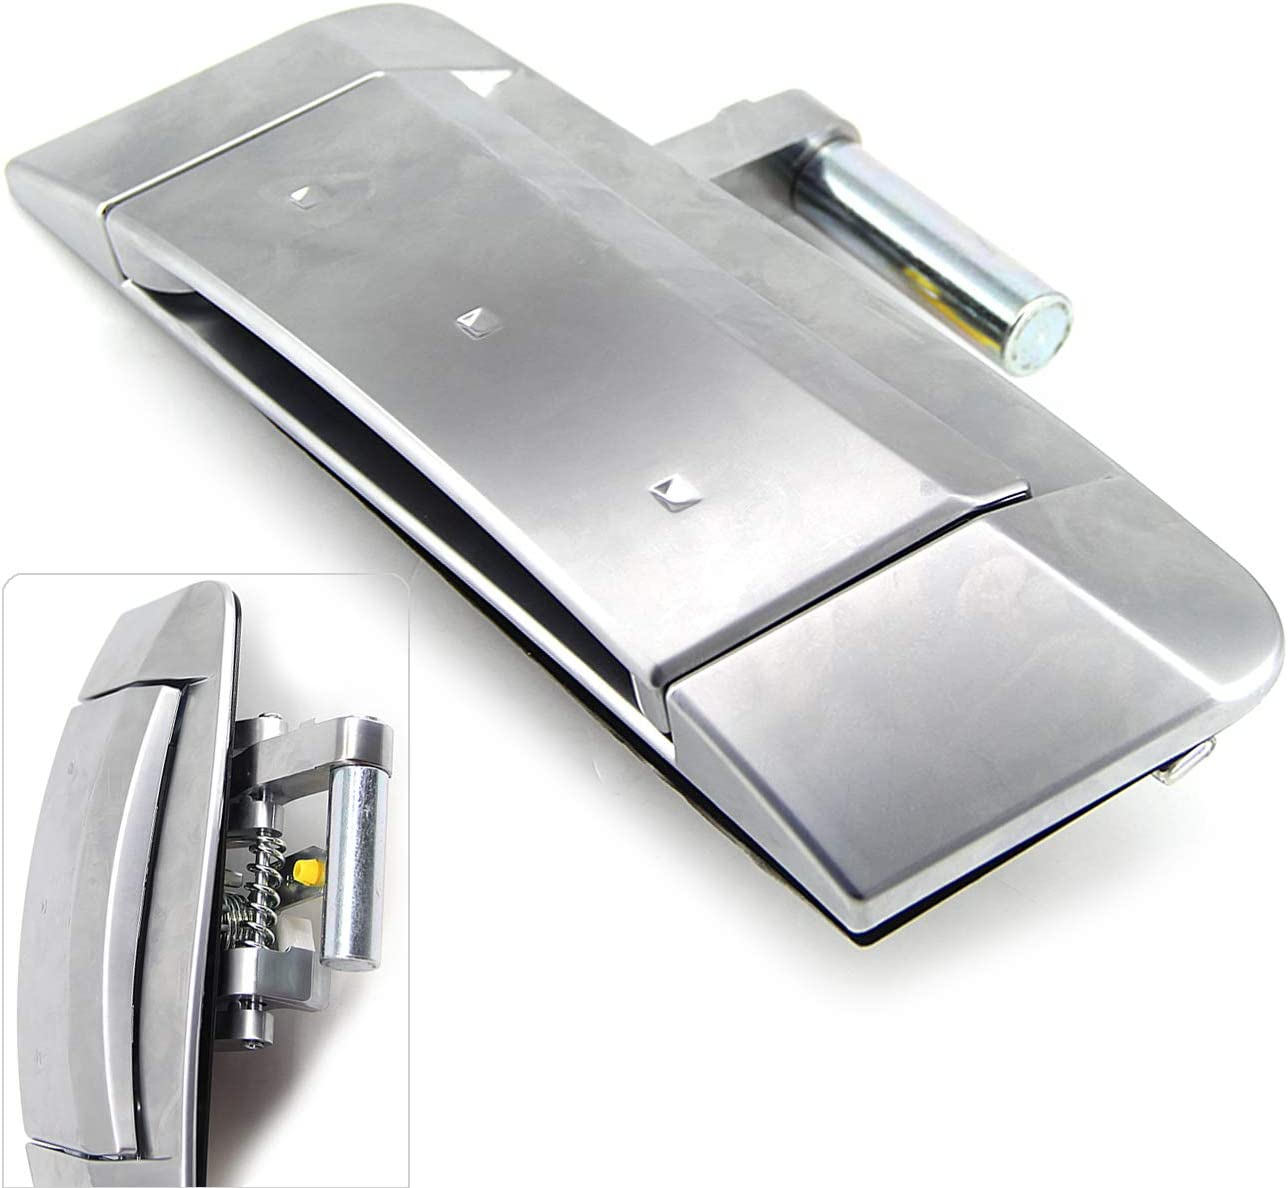 Fit Front Right Passenger Side and Chrome Color Replaces 80606-CD01E 80606-CD01D 80606-CD00B FEXON Exterior Door Handle Replacement for Nissan 350Z 2003 2004 2005 2006 2007 2008 2009